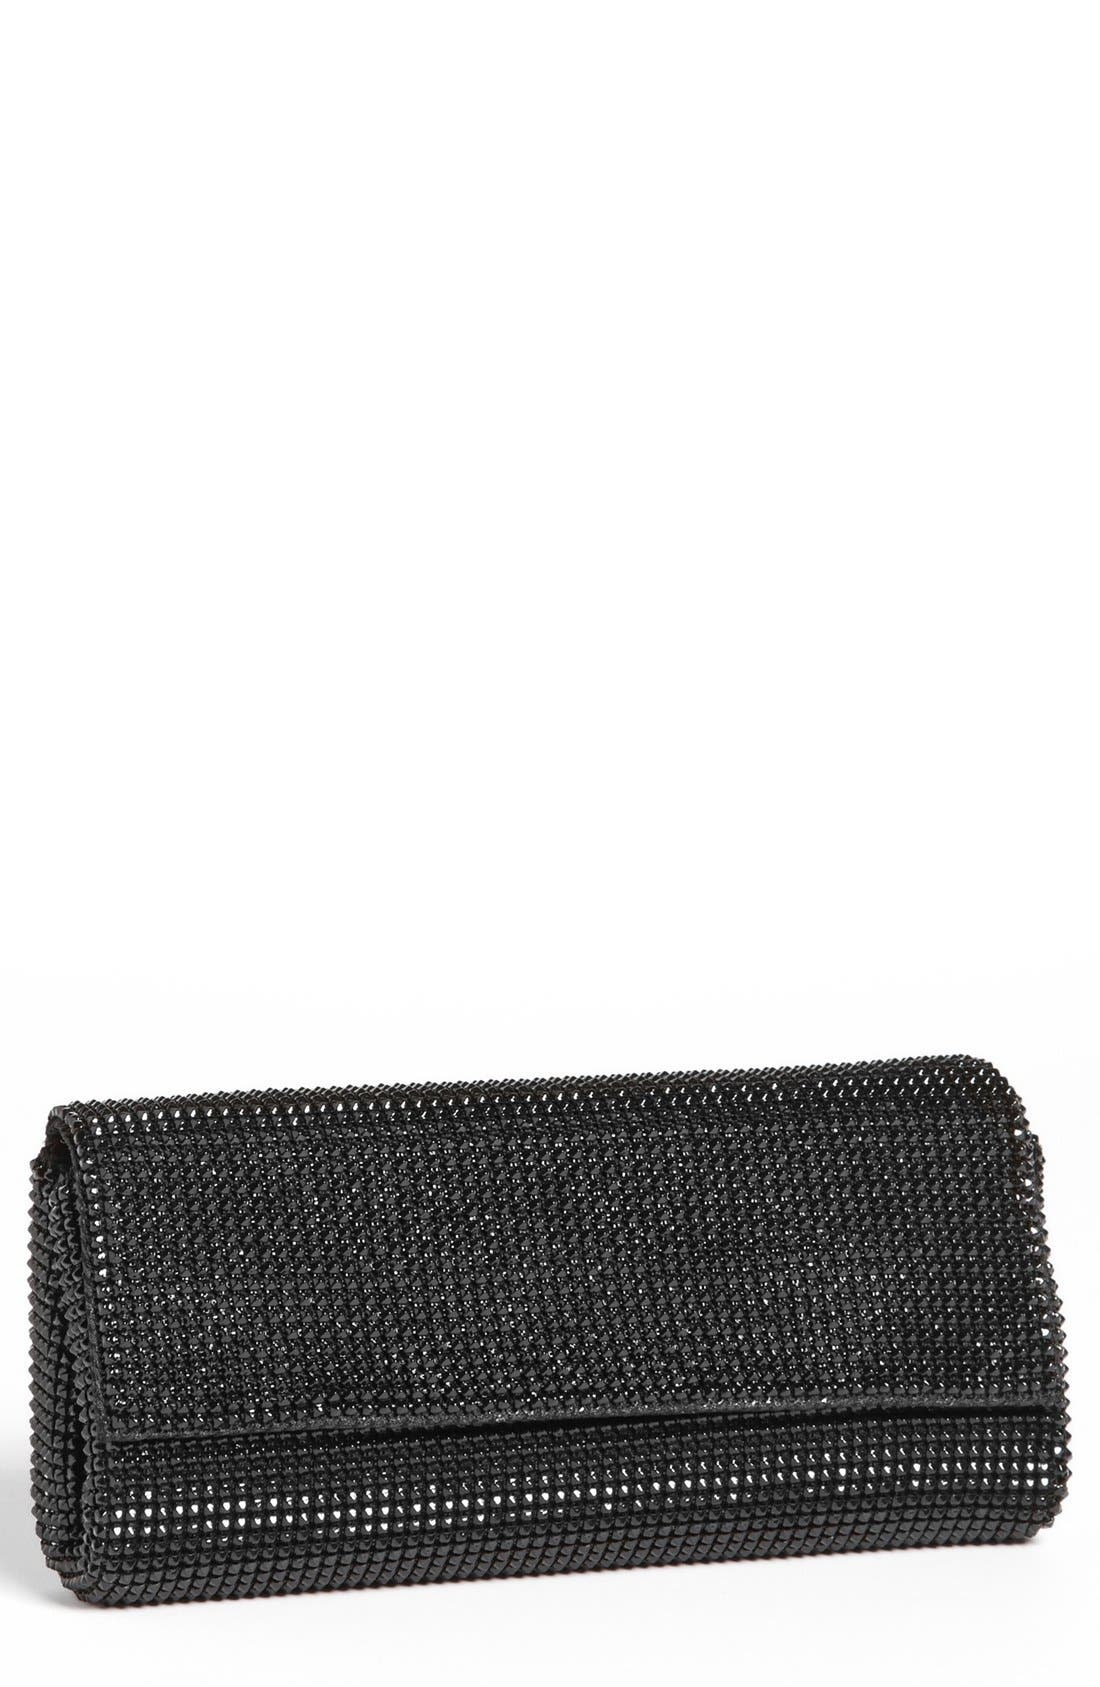 'Pyramid' Mesh Clutch,                             Main thumbnail 1, color,                             BLACK